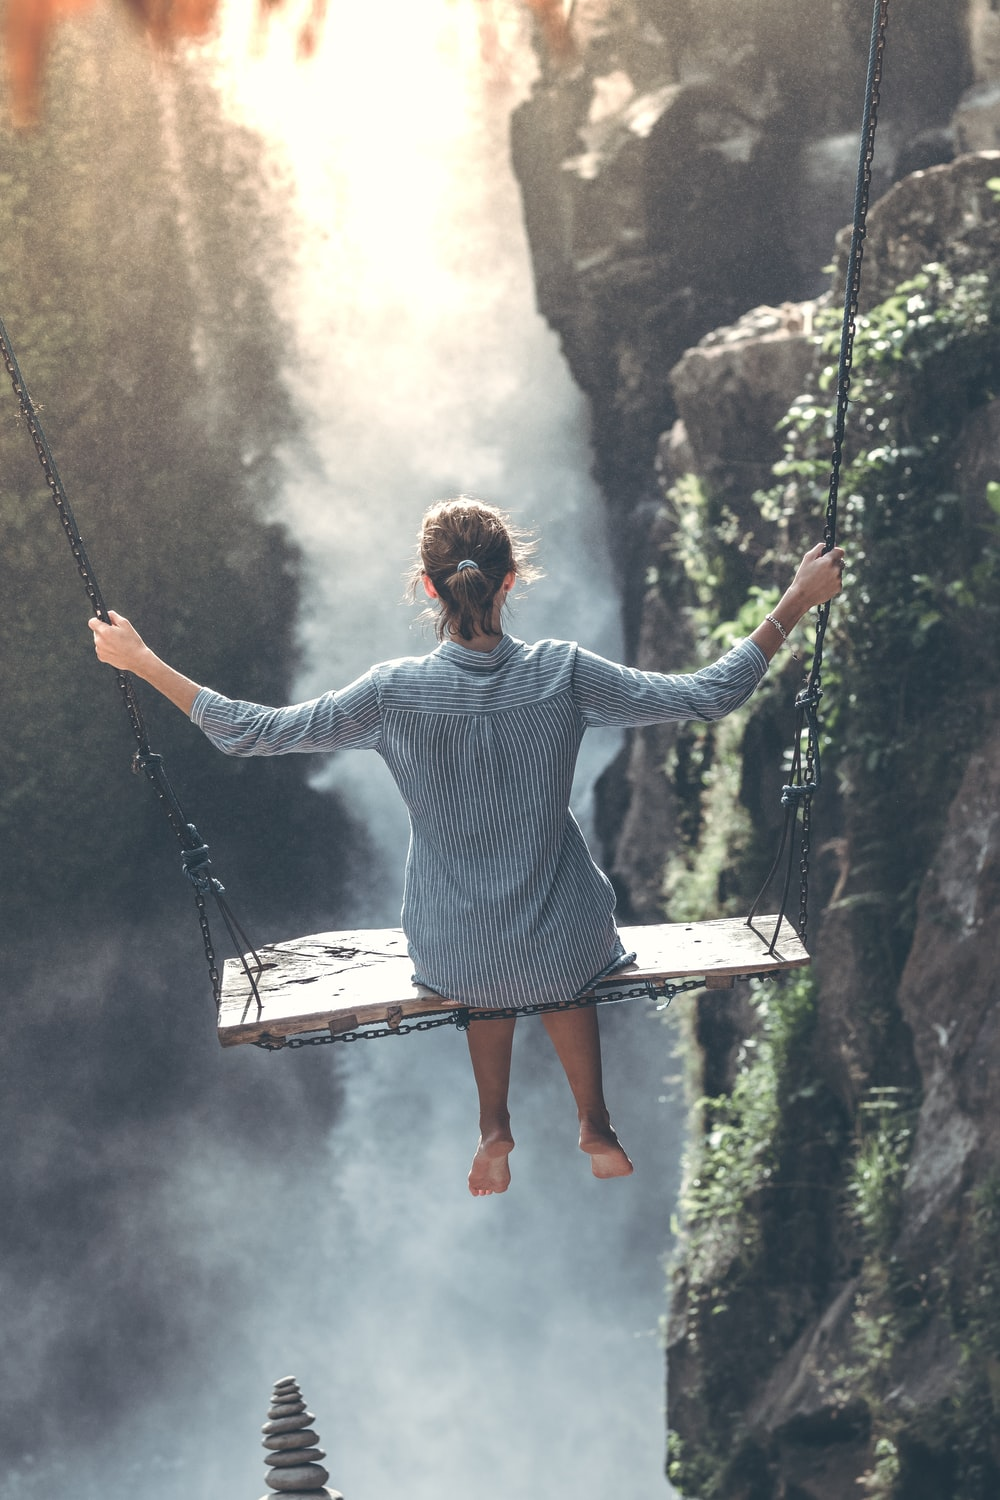 woman riding on wooden swing